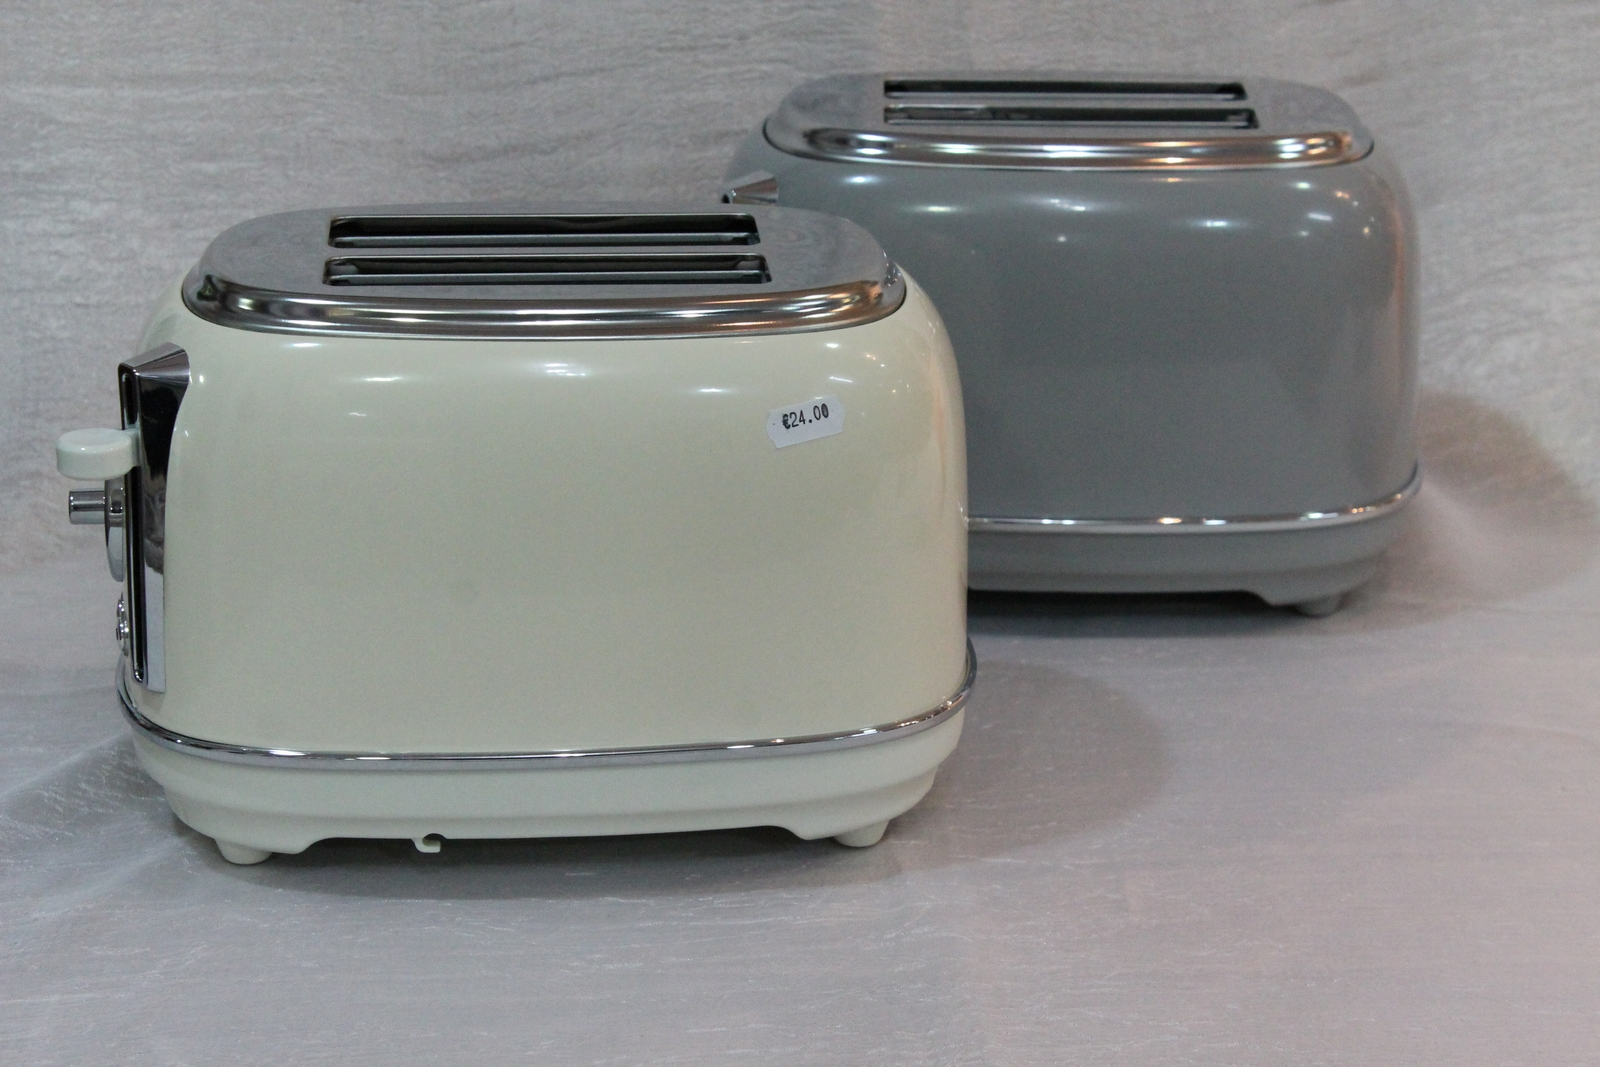 Toasters for sale, Torrevieja, Spain